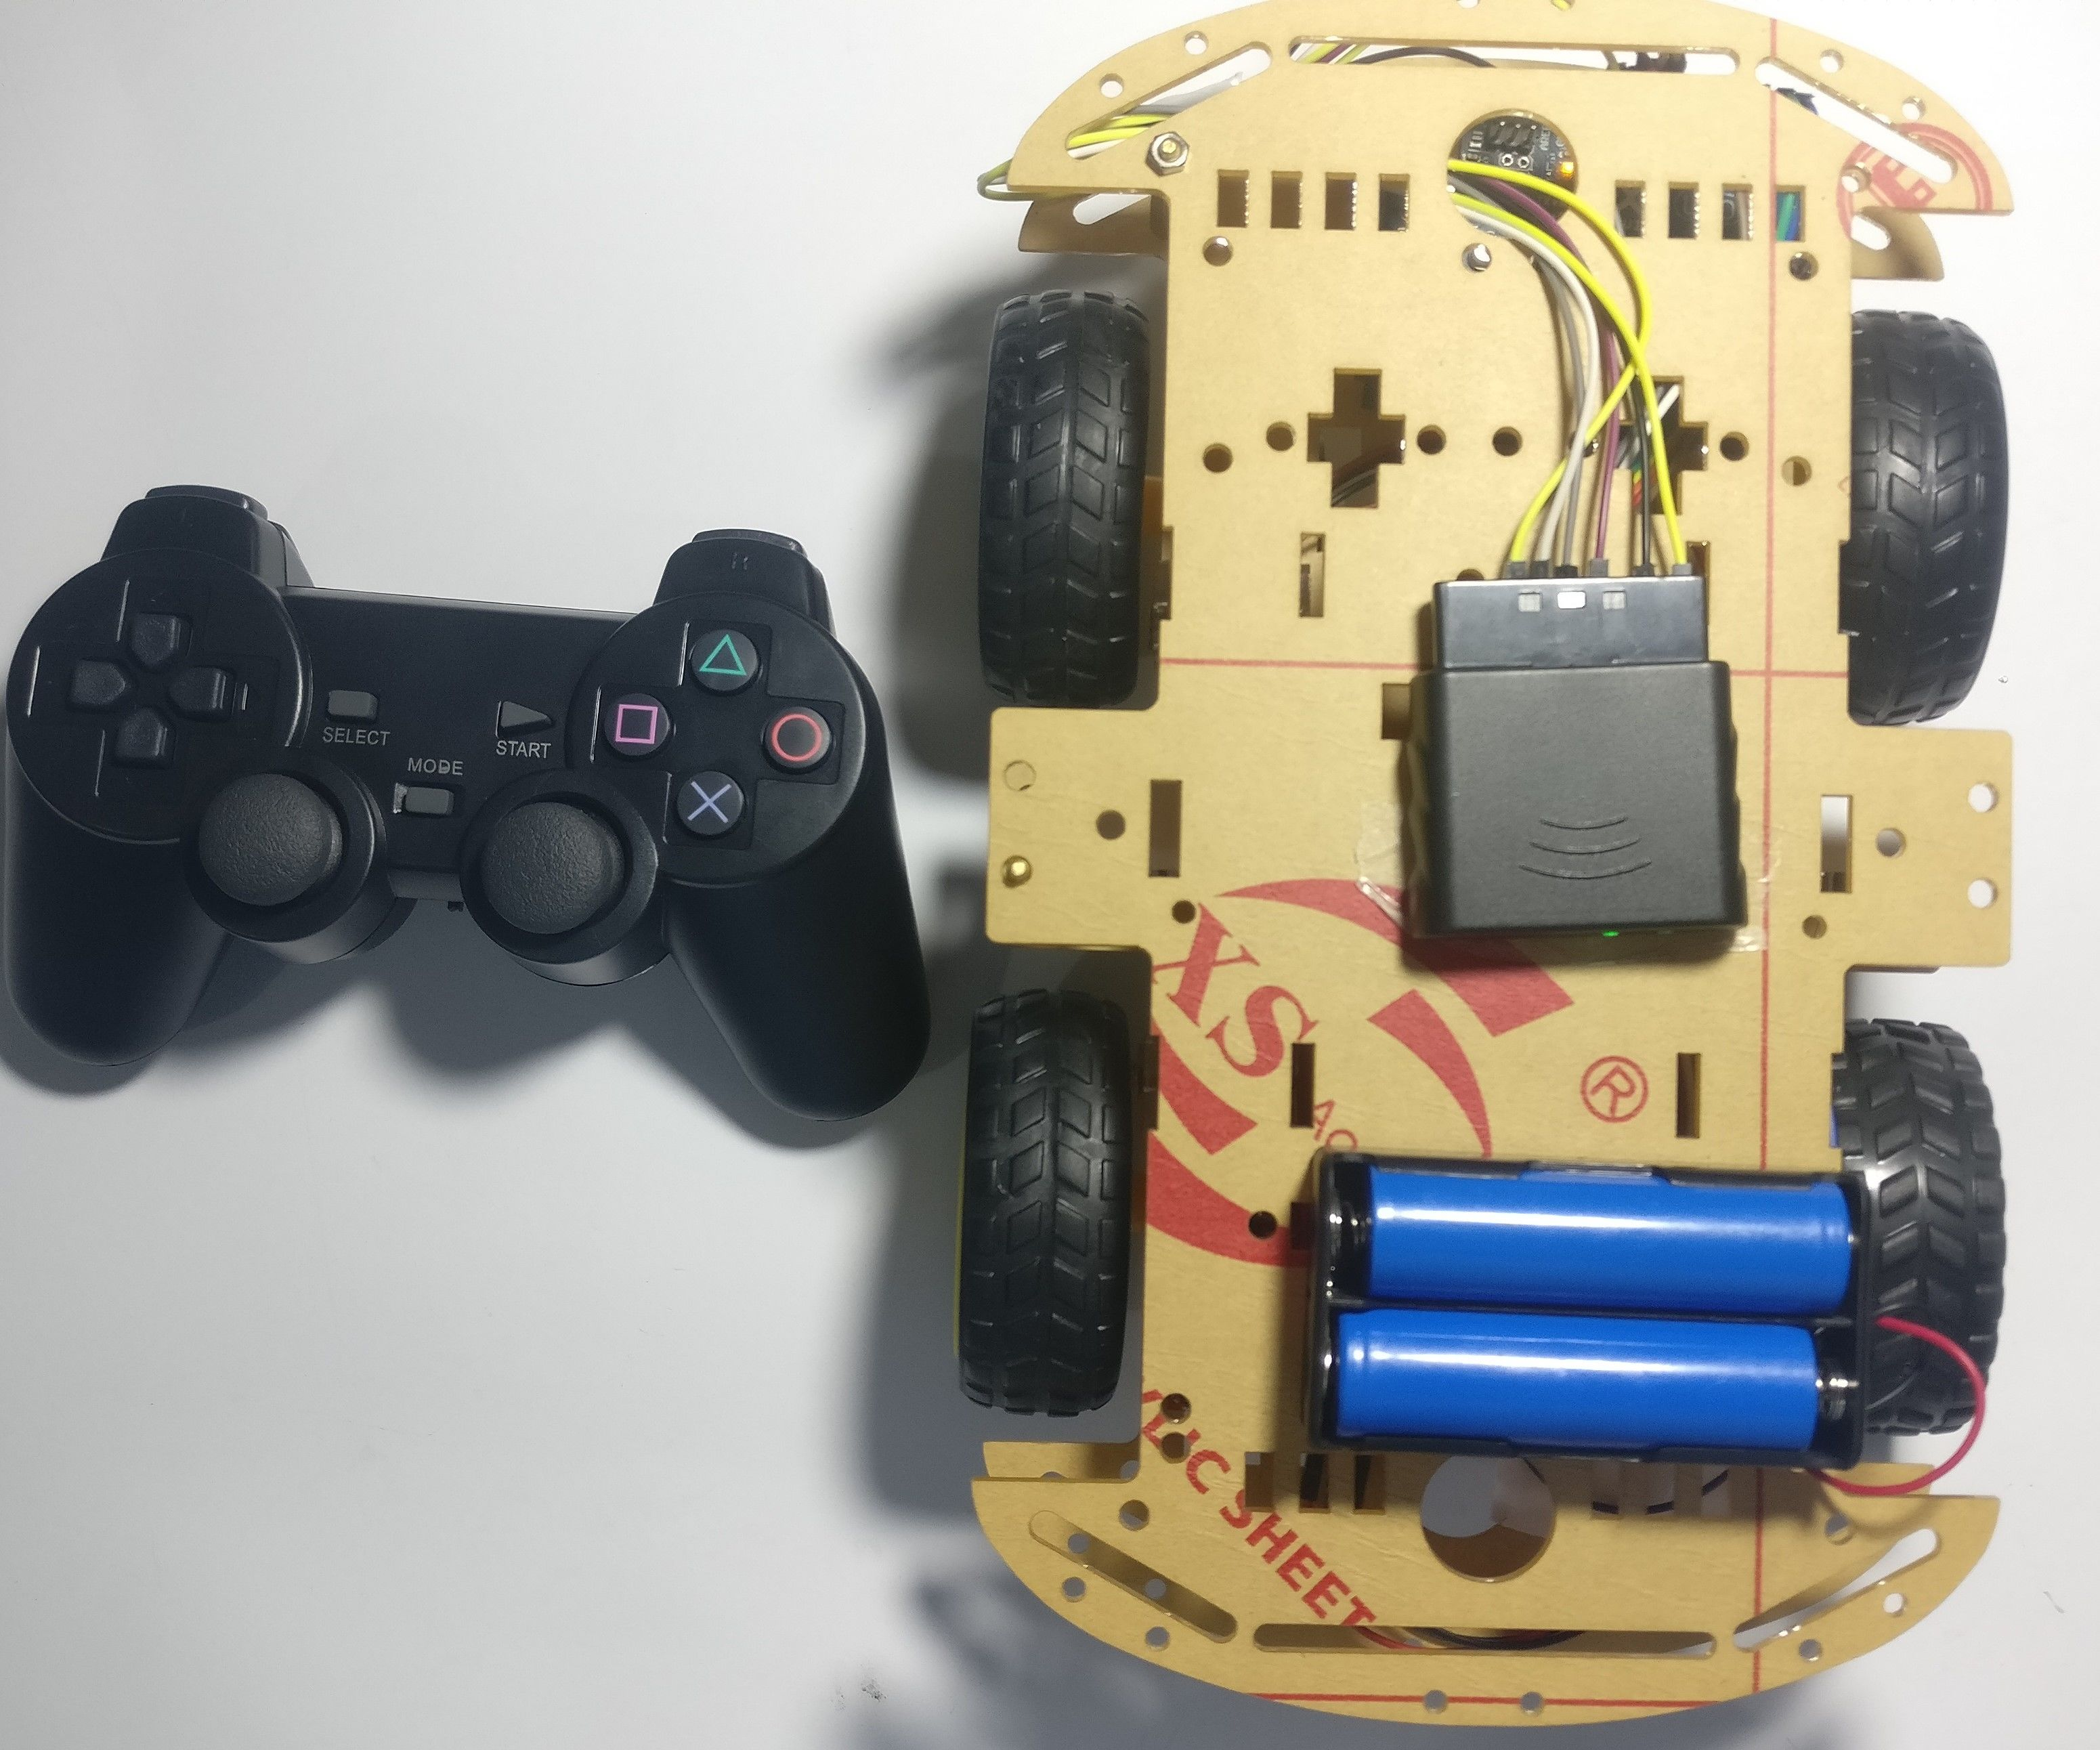 Robotic Car Kit Assembling and Controlling by PS2 Wireless Remote